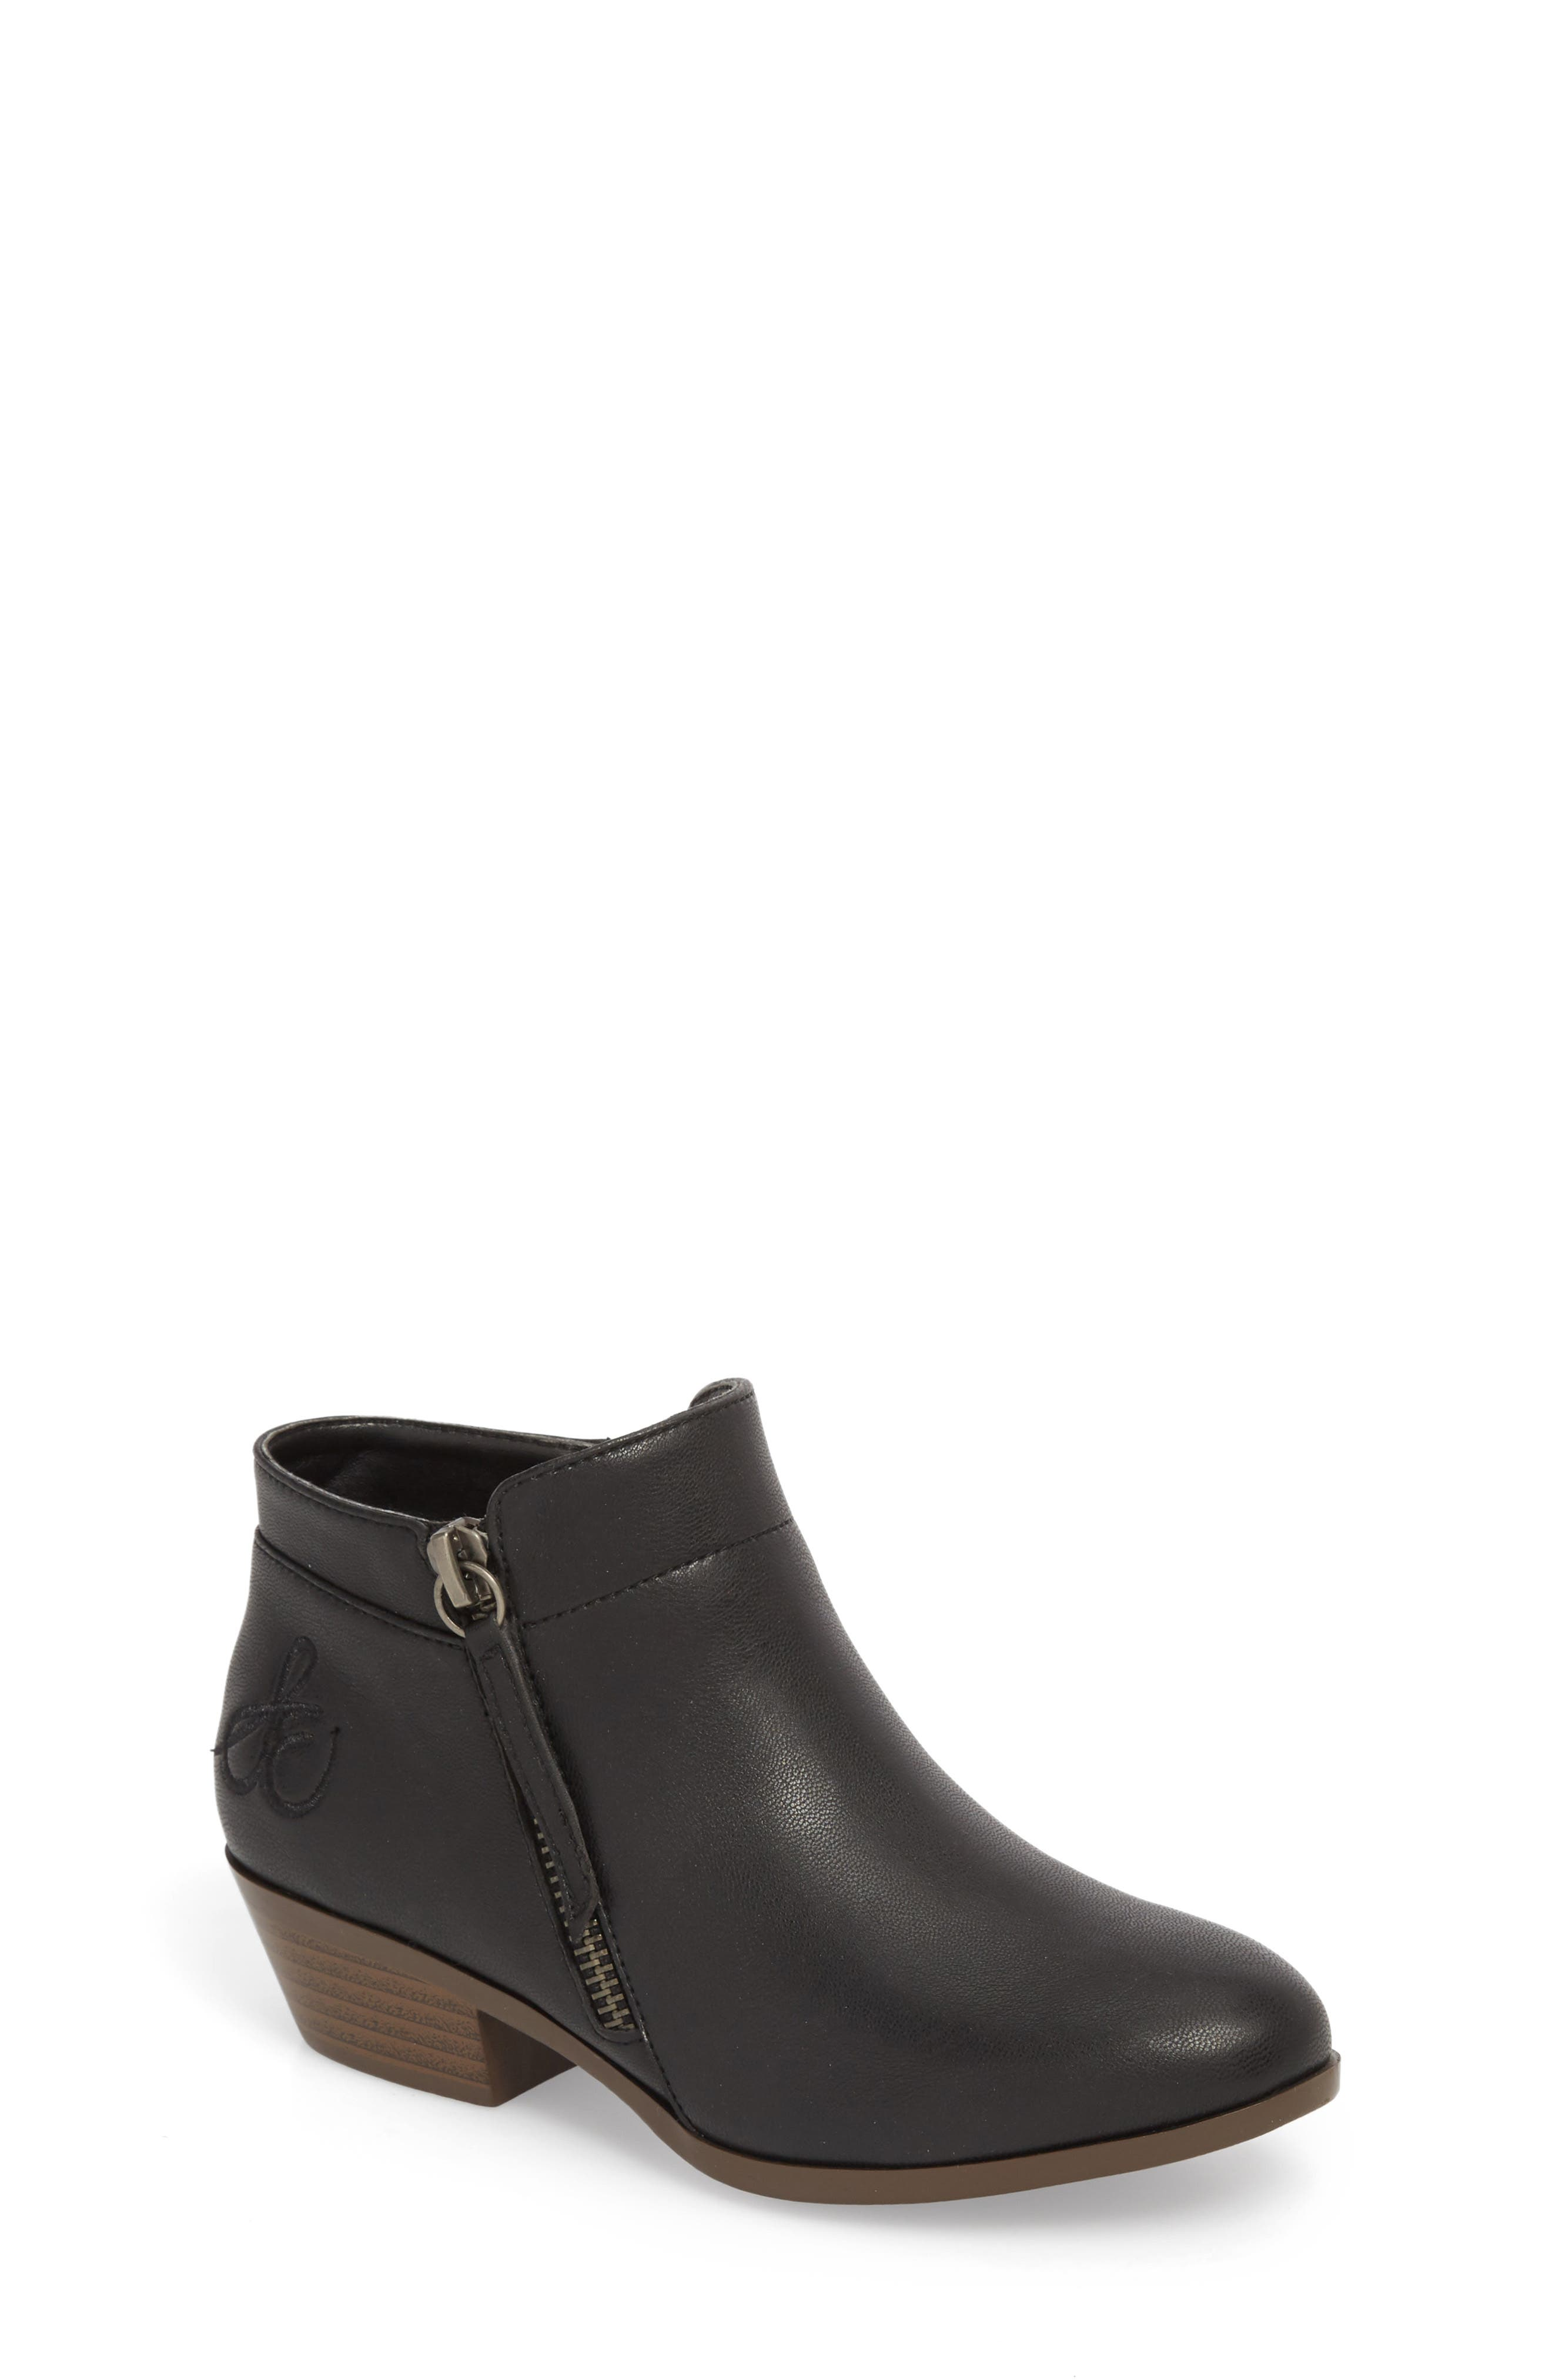 Petty Packer Bootie,                         Main,                         color, BLACK